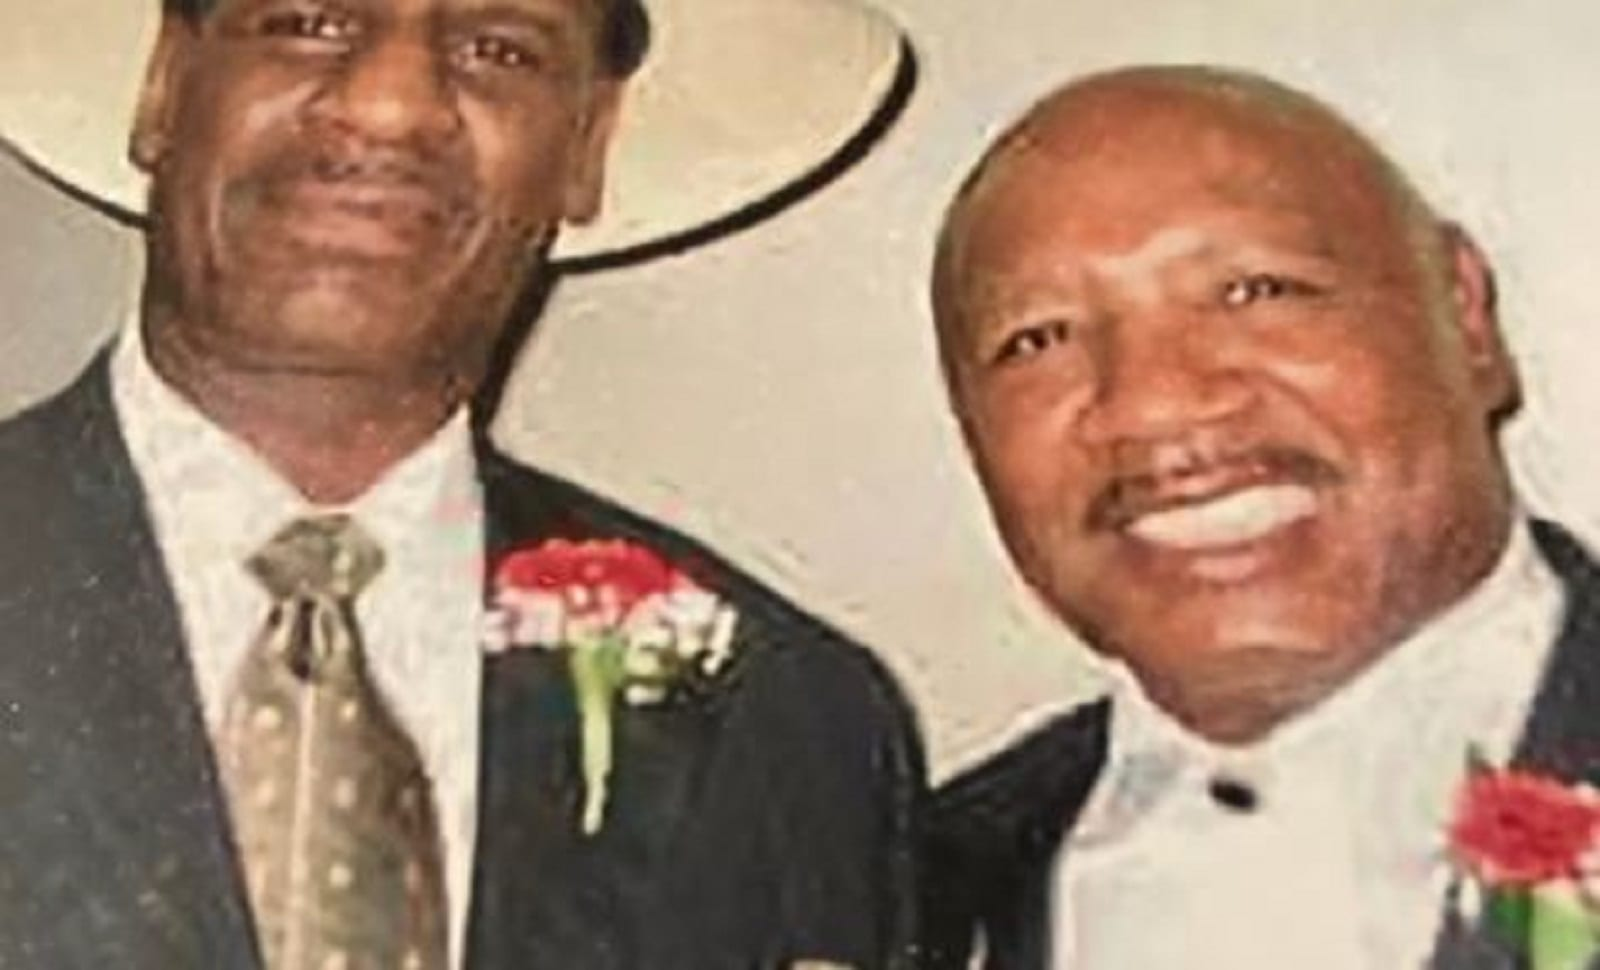 Michael Spinks Reacts To The Passing Of Marvin Hagler